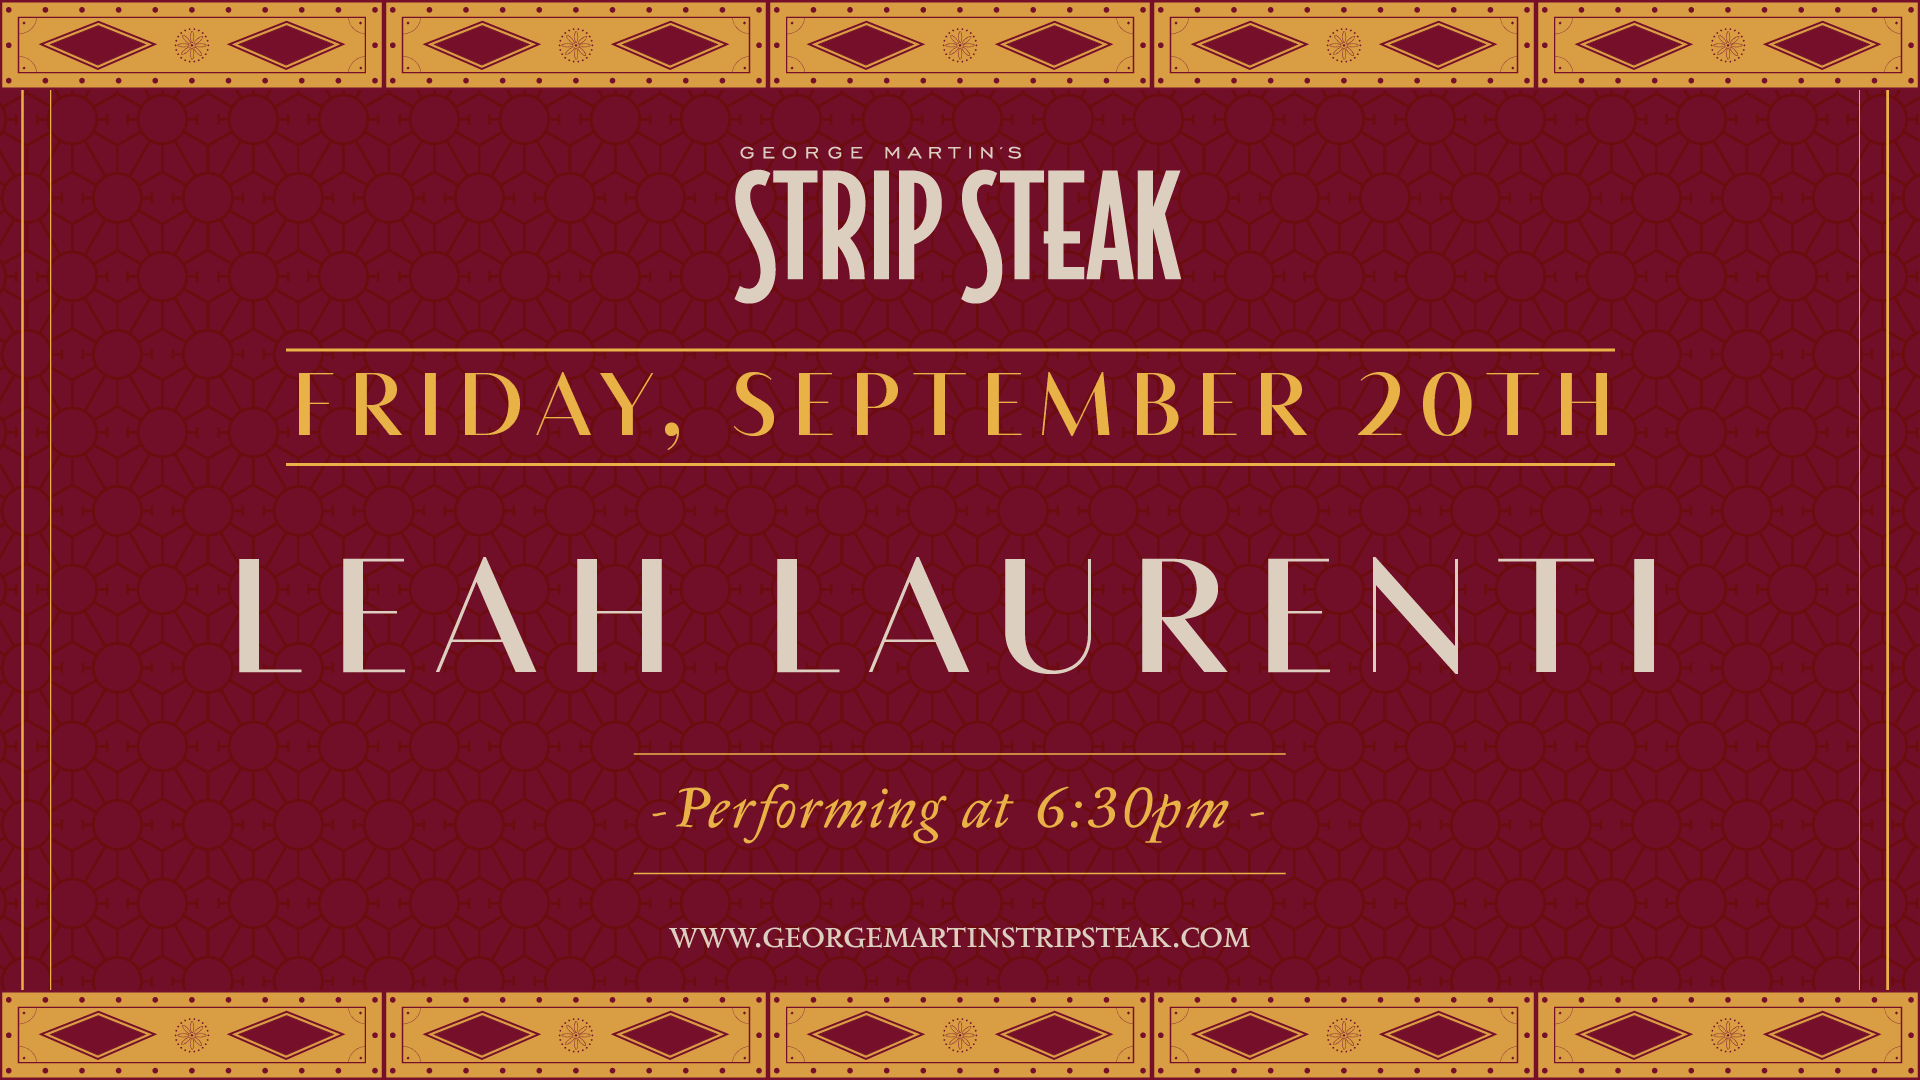 Flyer for Leah Laurenti on Friday, September 20th at 6:30pm